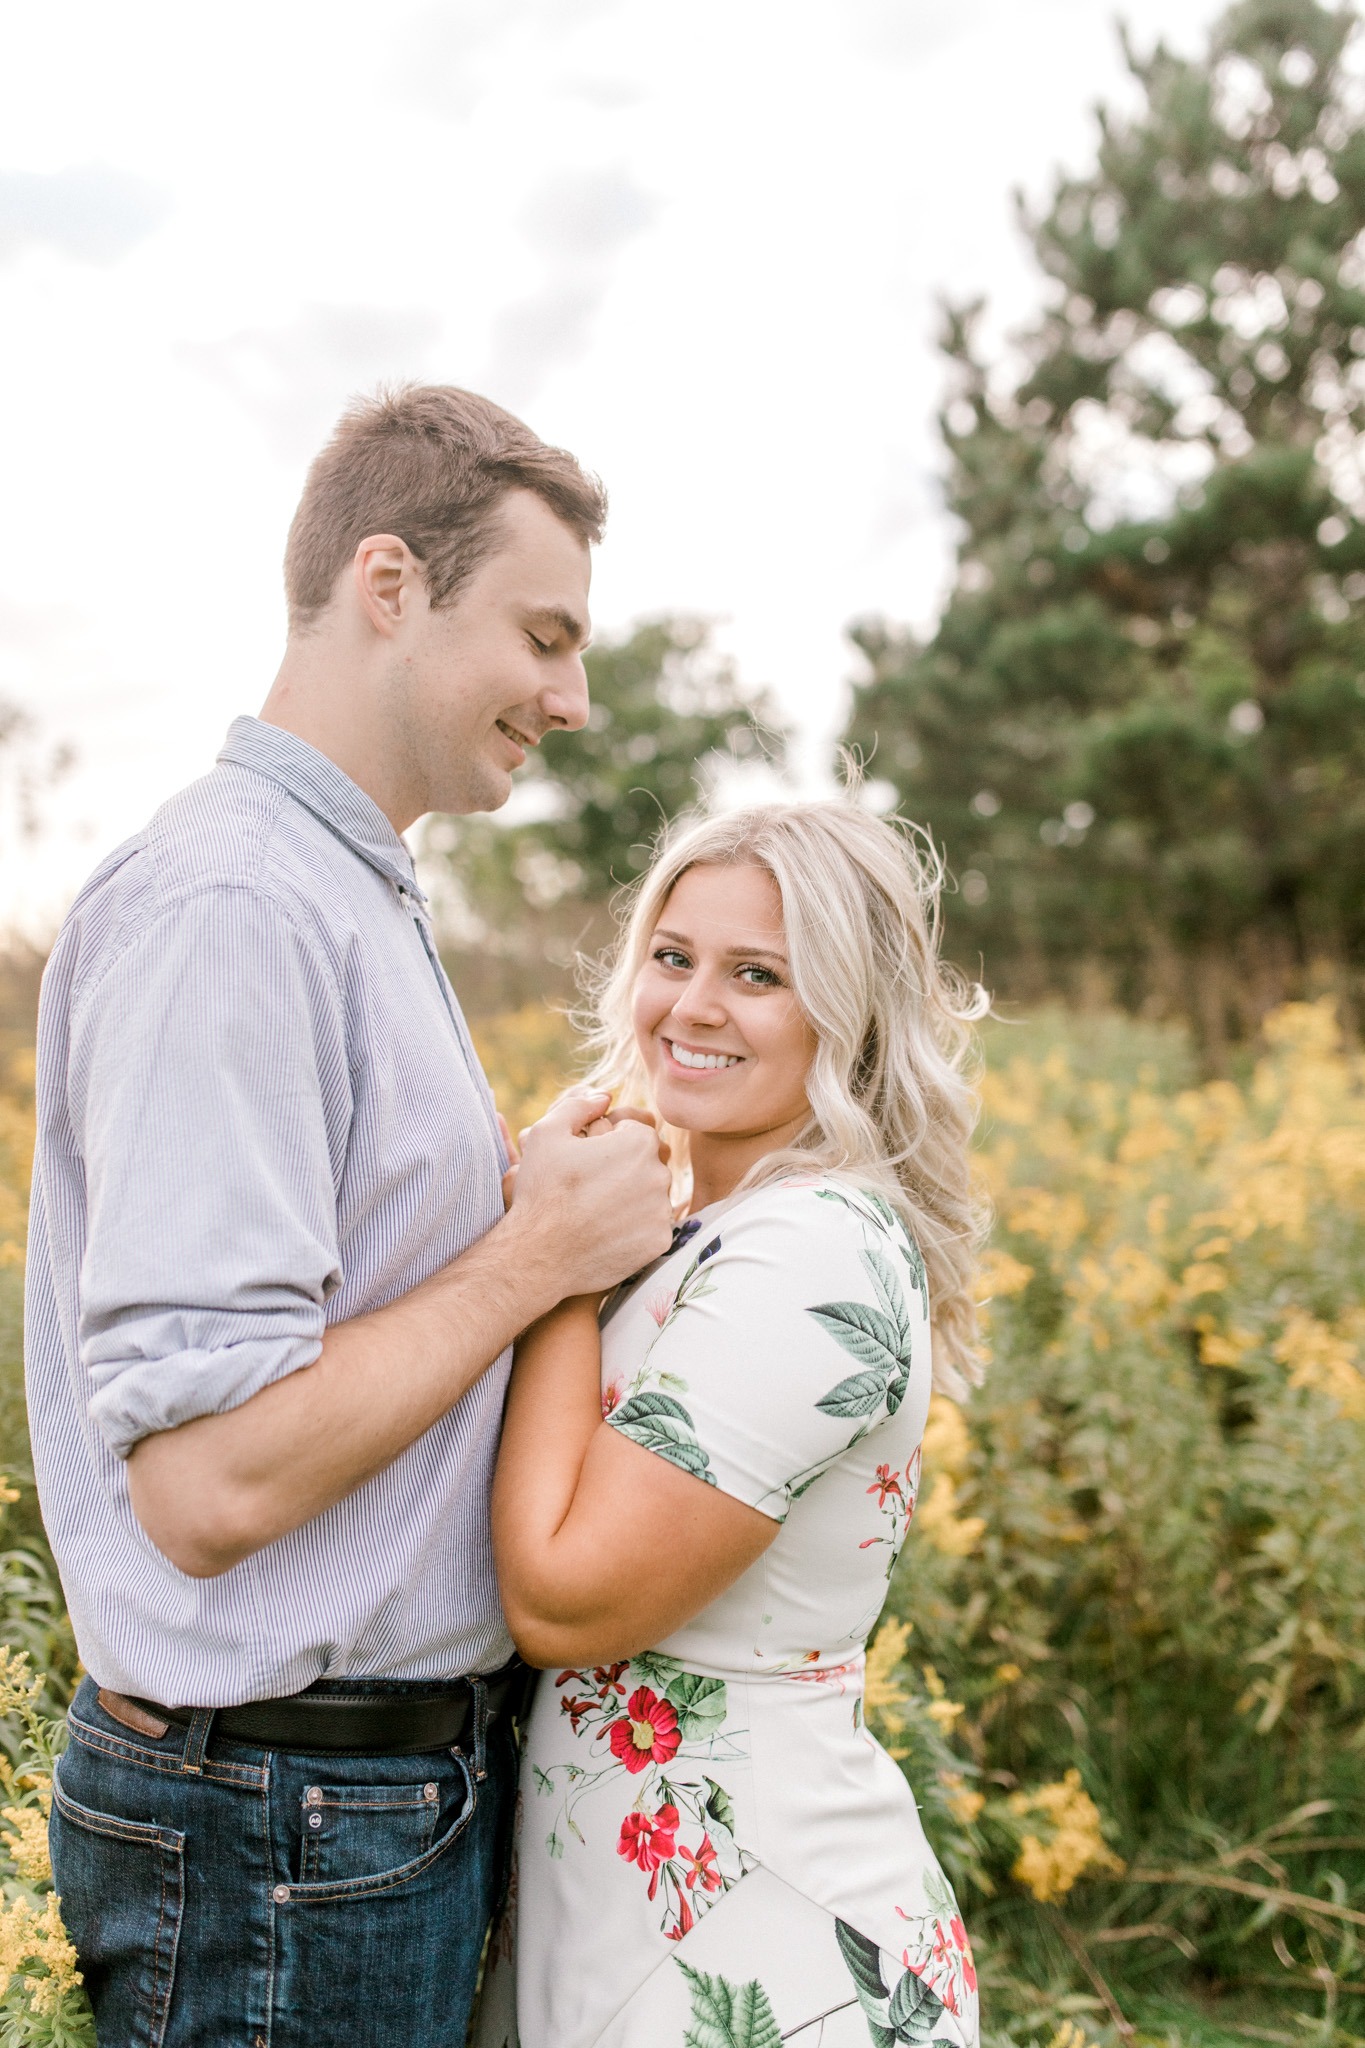 Summer engagement session   Wildflowers   Field engagement session   Floral Engagement Dress   West Michigan Wedding Photography